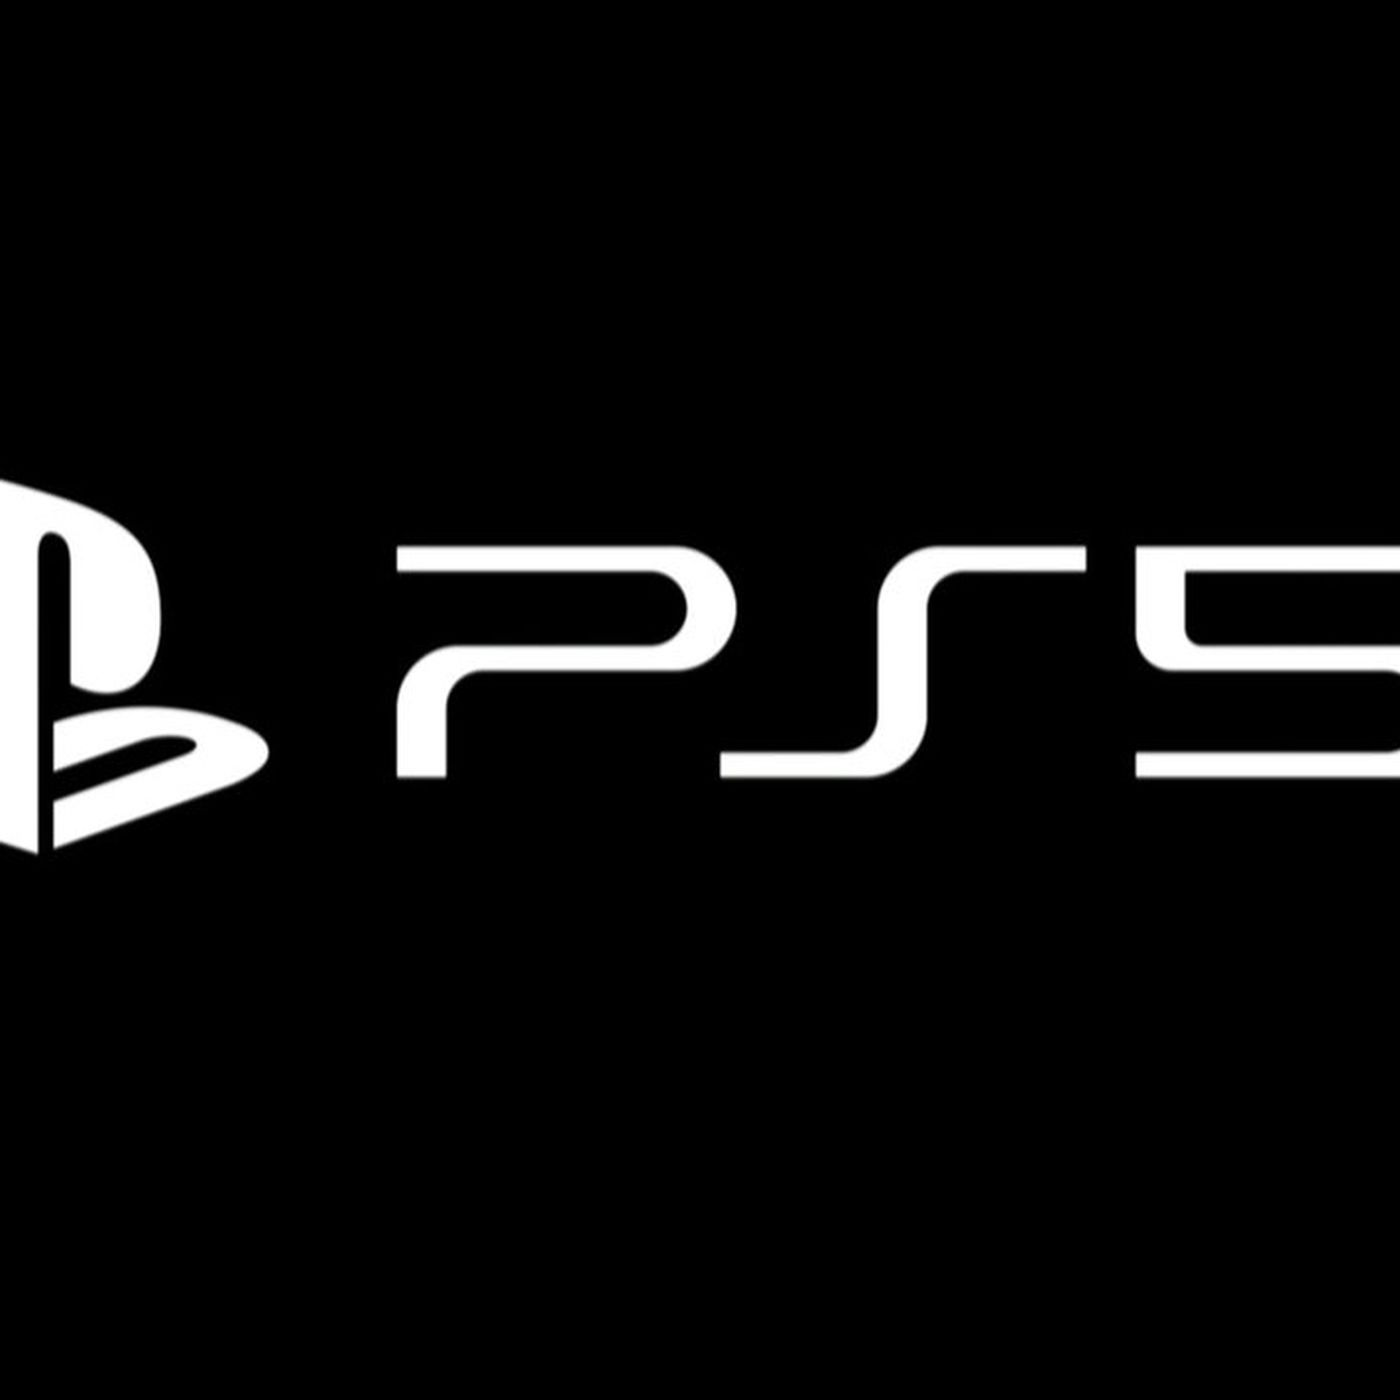 Sony Reveals Playstation 5 Logo And Shares Psvr Sales Milestone The Verge